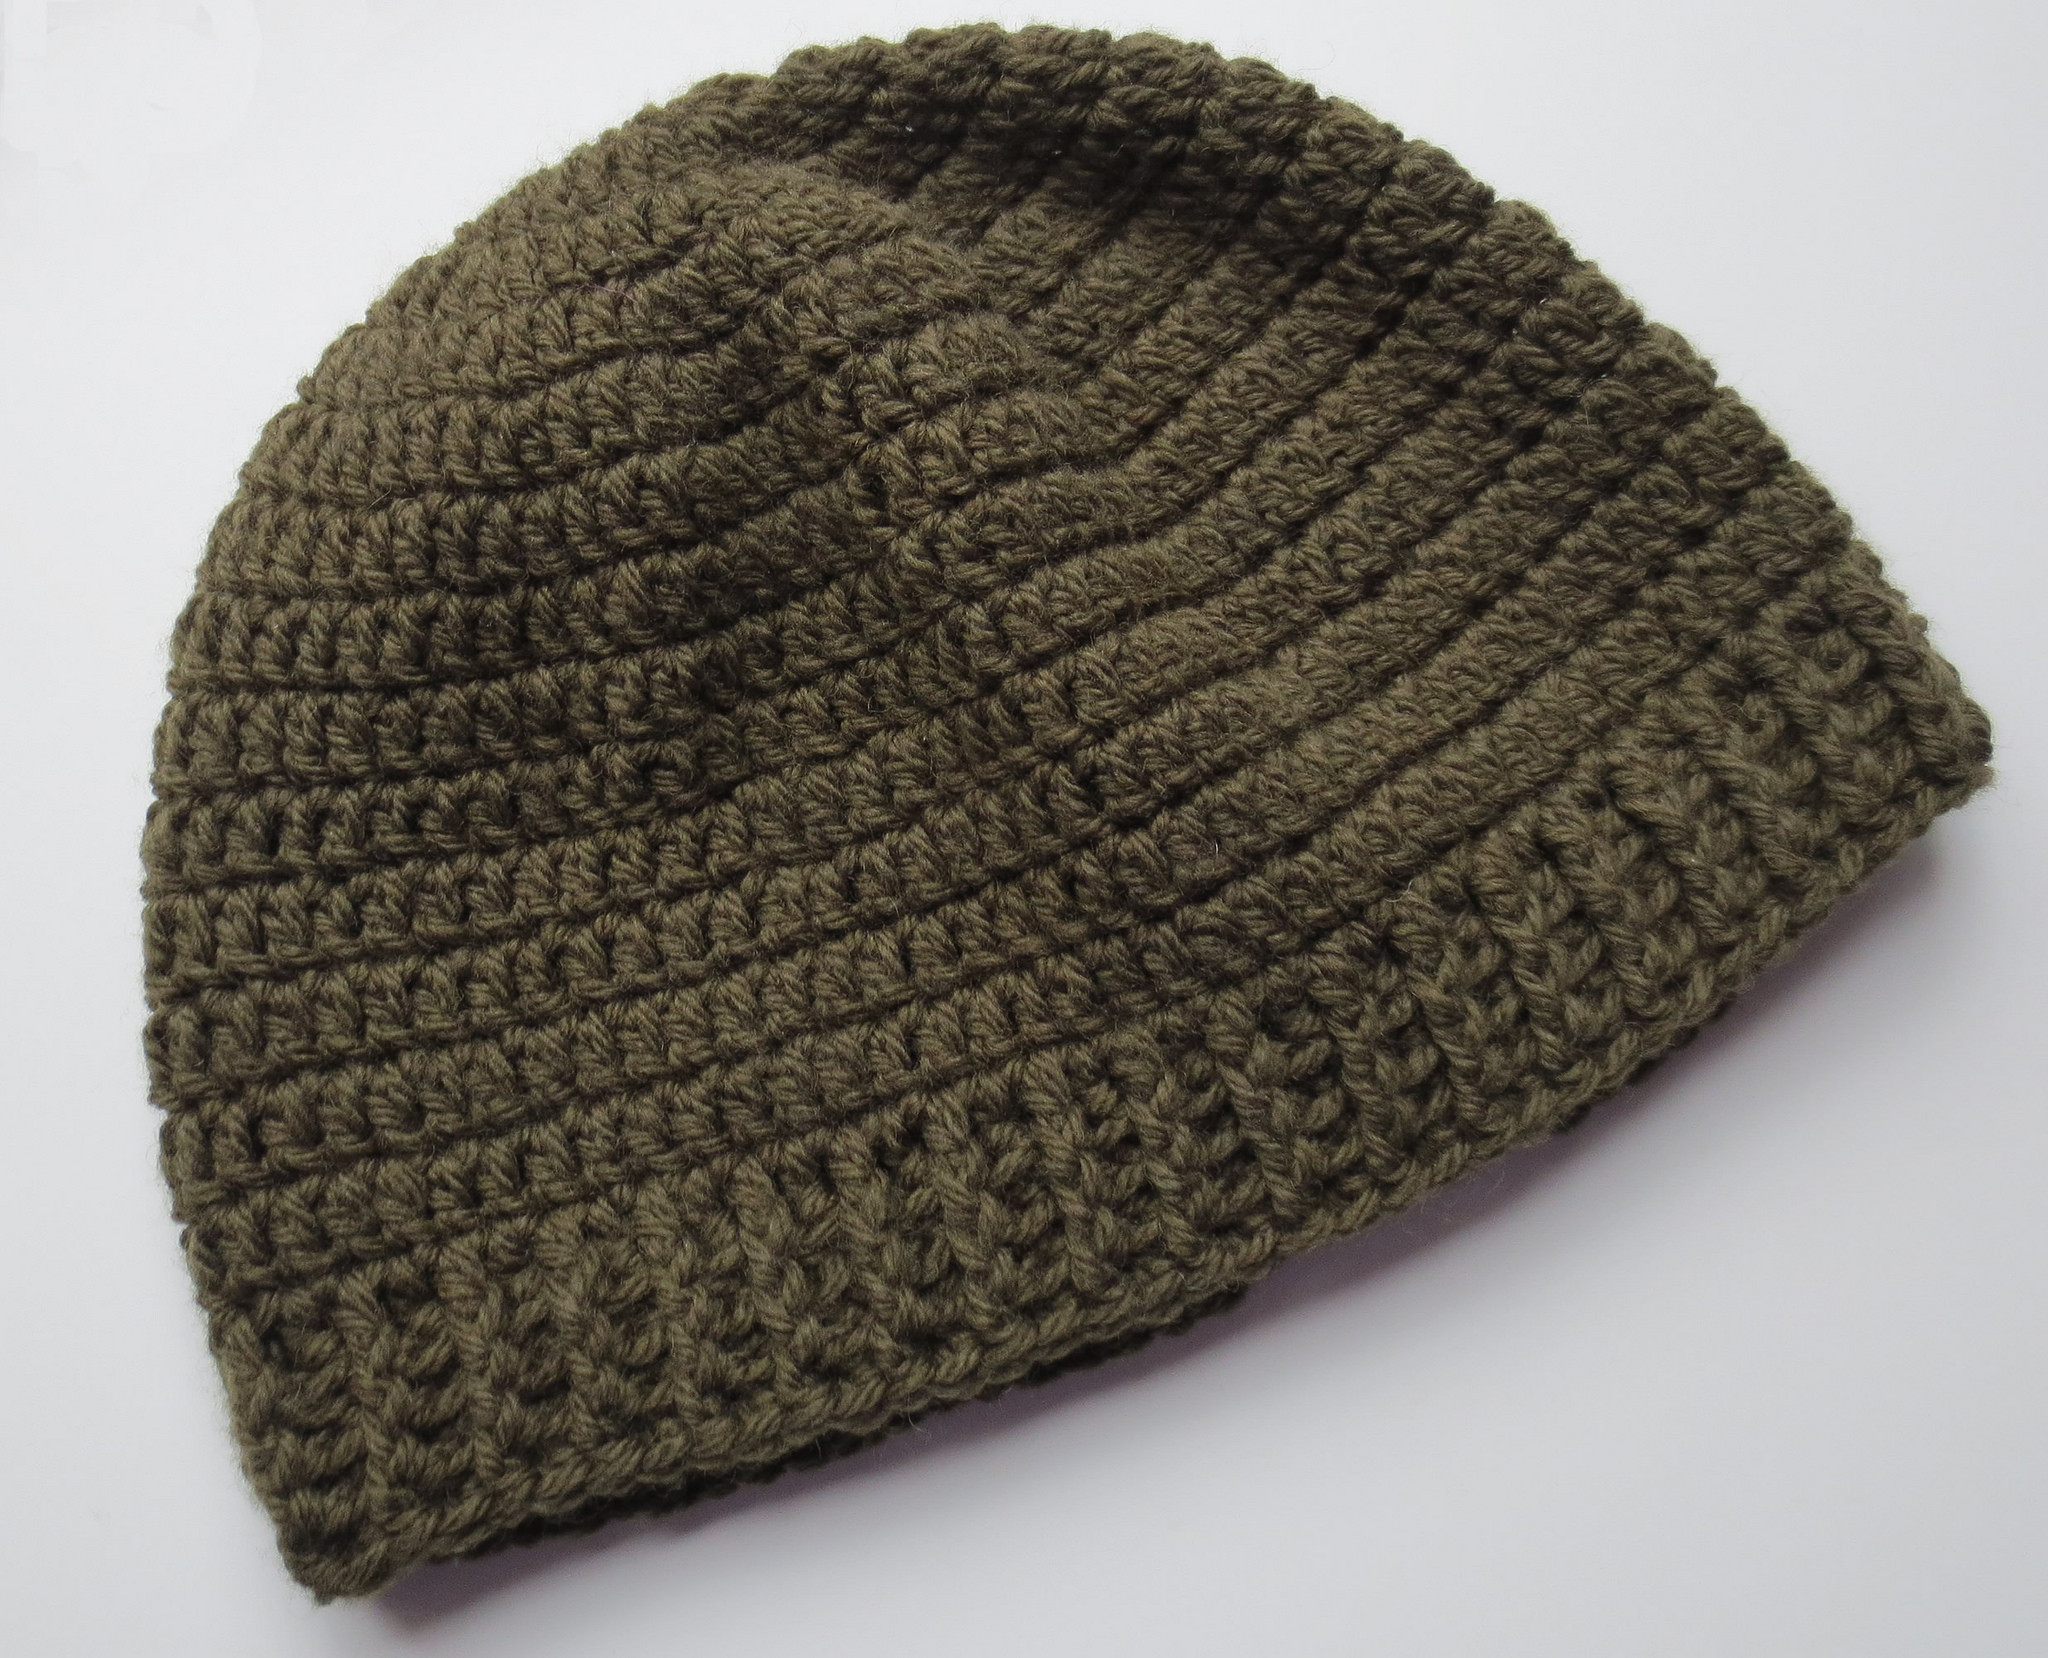 Hat Patterns Beautiful Crocheted Ribbed Hat Pattern Of Luxury 49 Pictures Hat Patterns